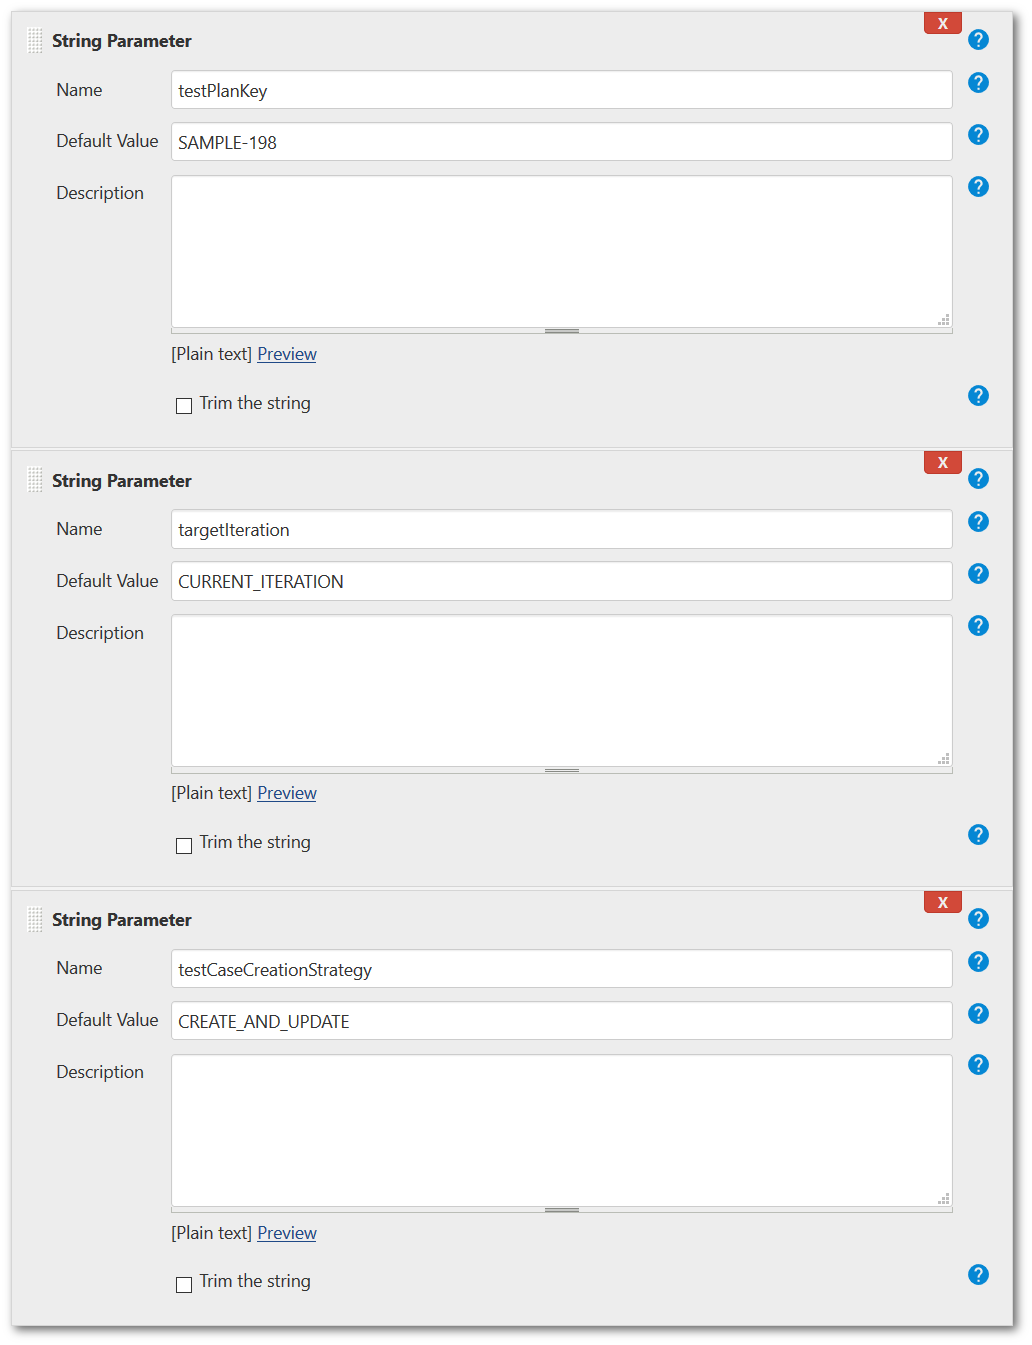 Example of completed parameters in Jenkins for run automated tests to TestFLO - Test Managemenet in Jira